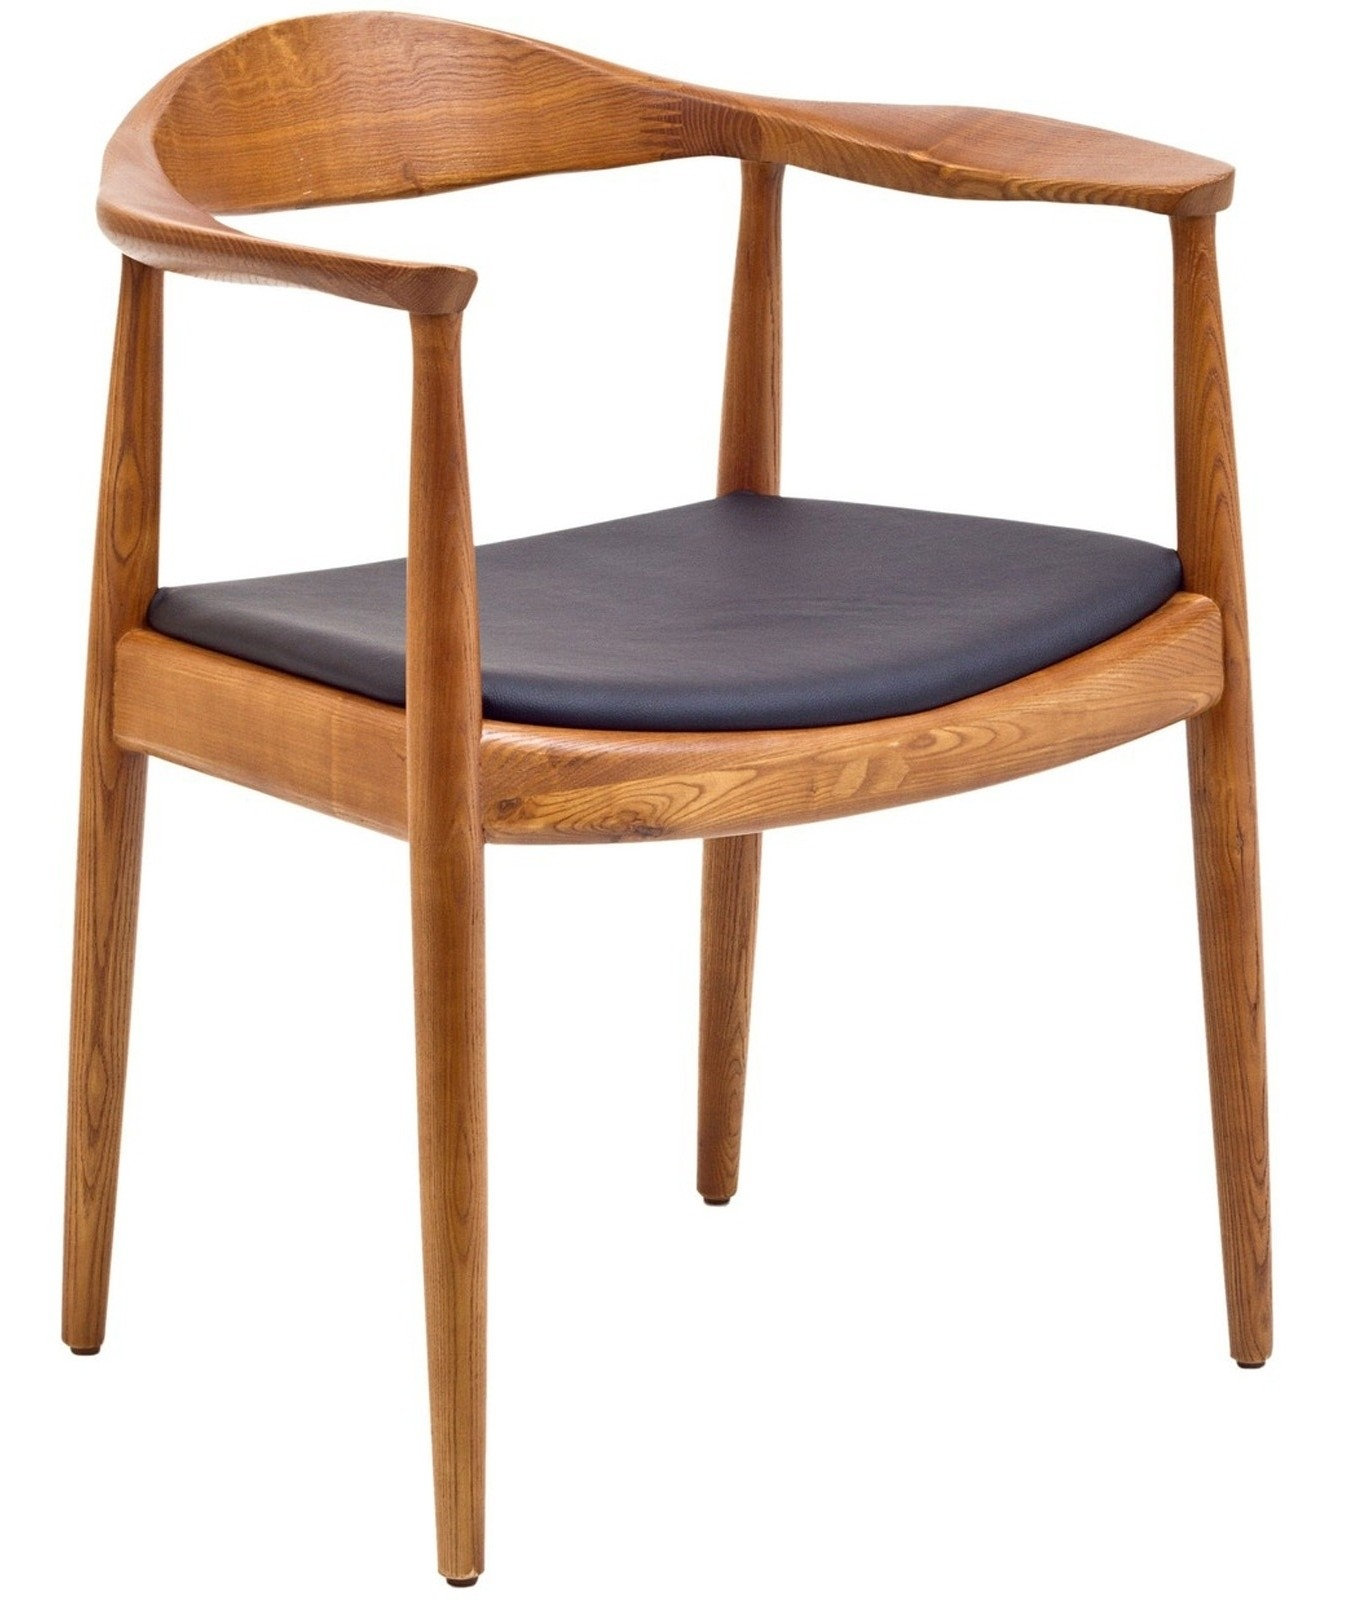 Hans wegner style presidential election round chair from renegade eei 649 coleman furniture - Hans wegner style chair ...